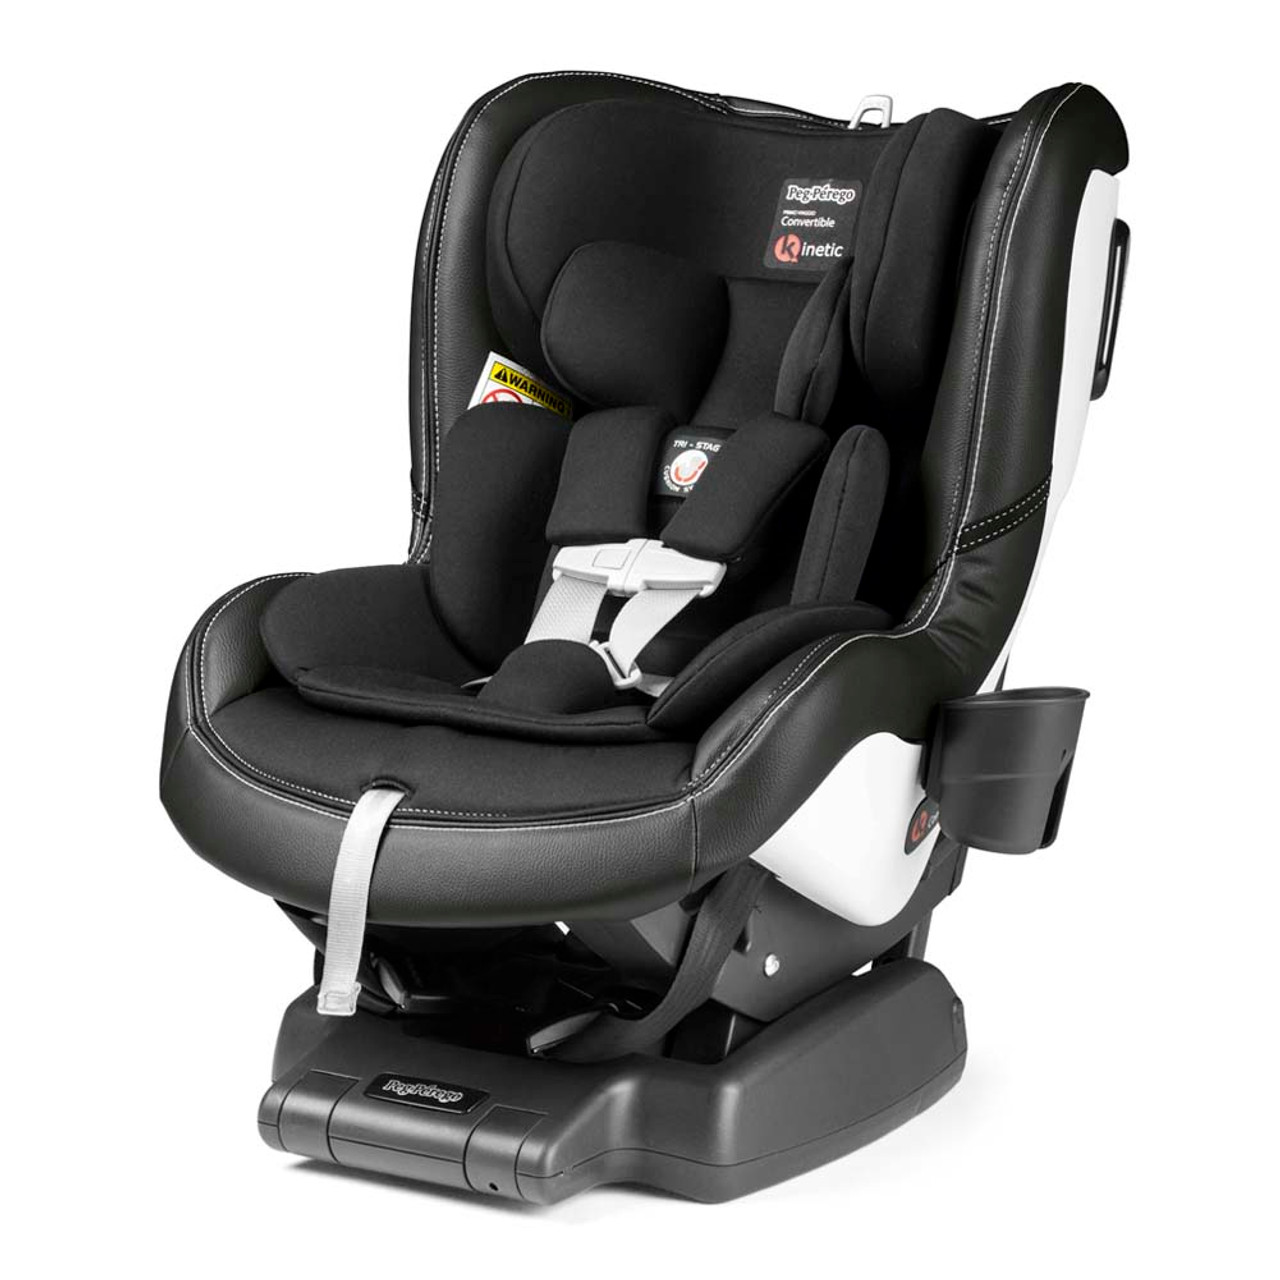 Maxi Cosi Car Seat Vs Peg Perego Peg Perego Primo Viaggio Kinetic Convertible Car Seat Licorice Leather